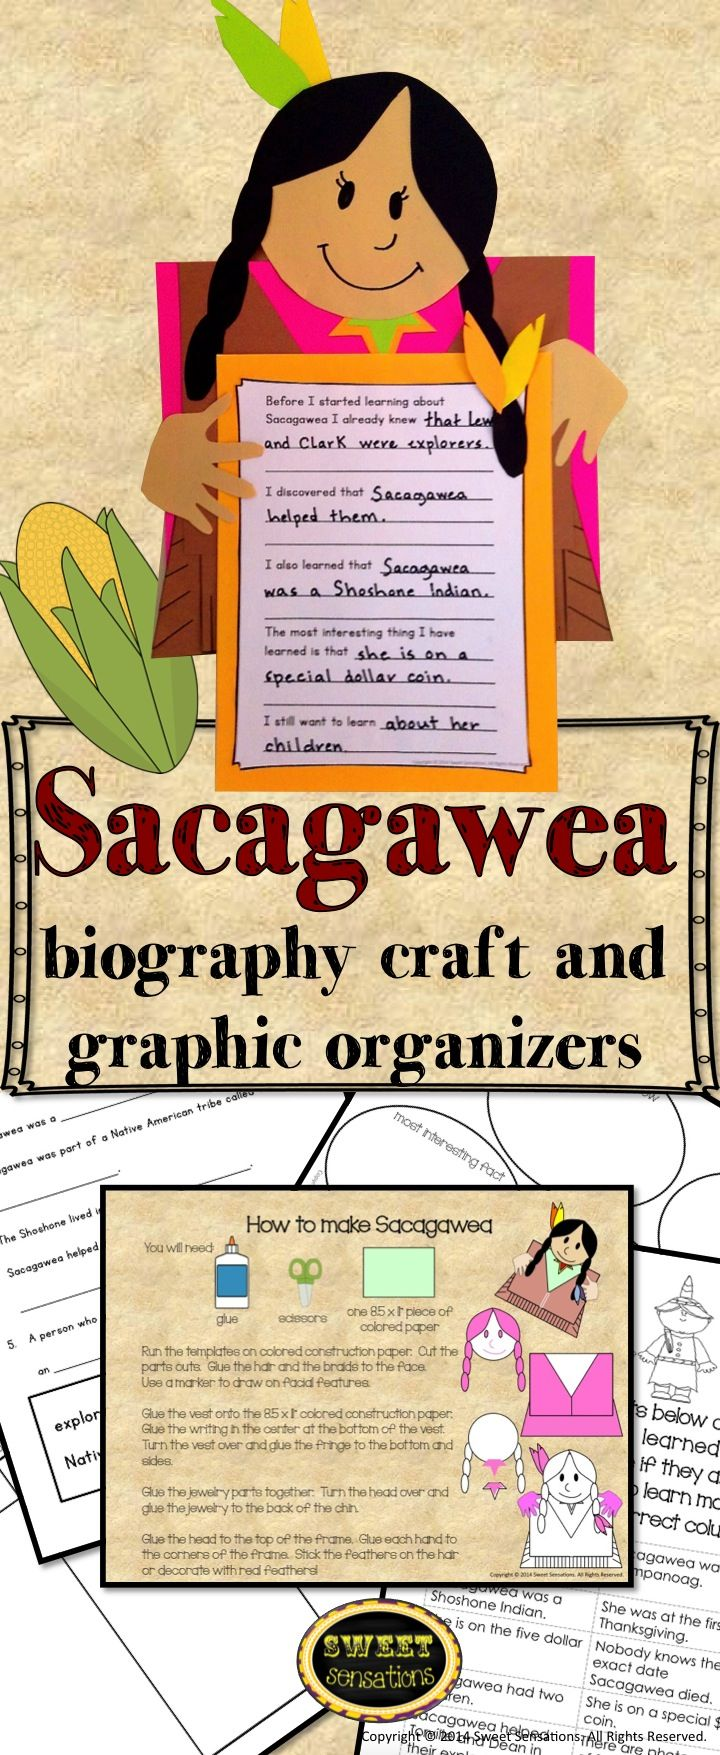 Are your first and second graders studying different text types? This graphic organizer pack is designed to enhance a unit on biographies. Focusing on Sacagawea, it invites students to learn more about her and share their knowledge in a fun craft activity. Along the way they will sharpen their understanding of biographies and how they differ from other text types.